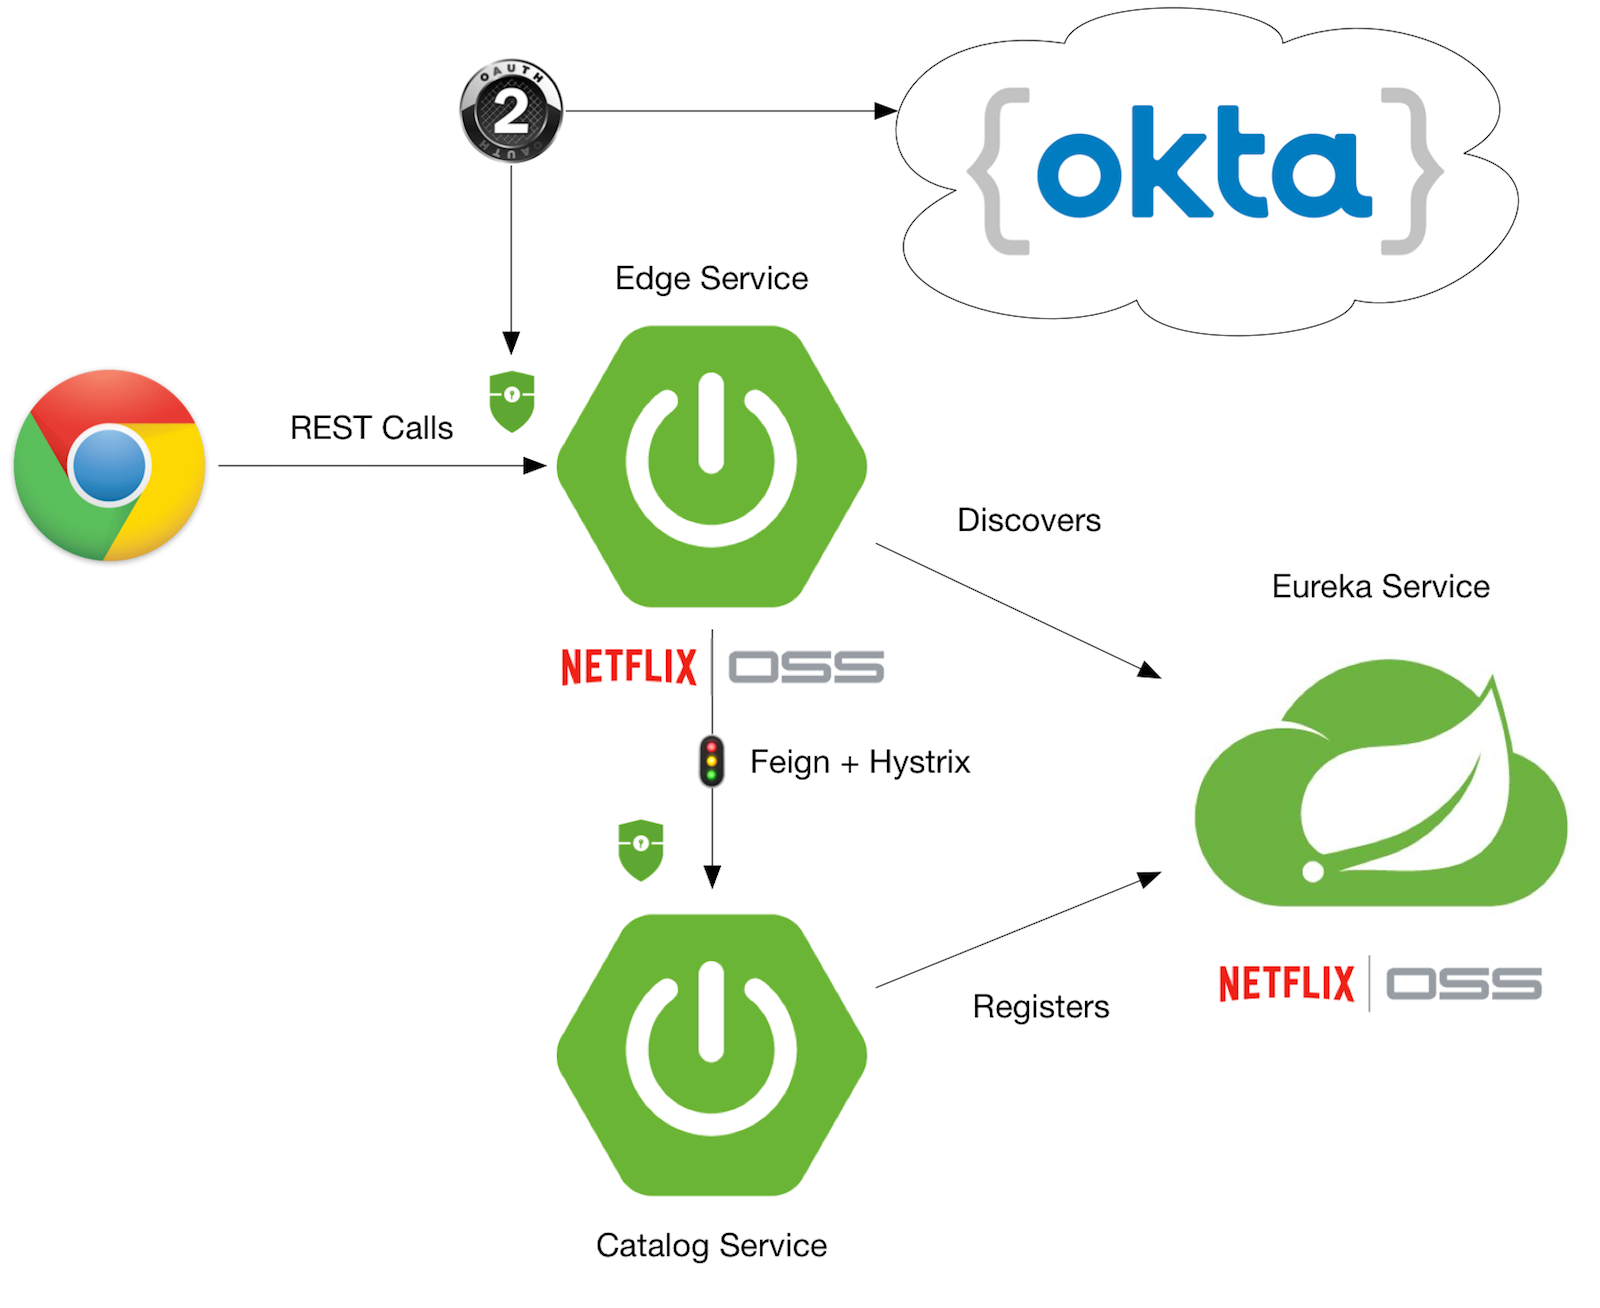 Spring Security and OAuth 2.0